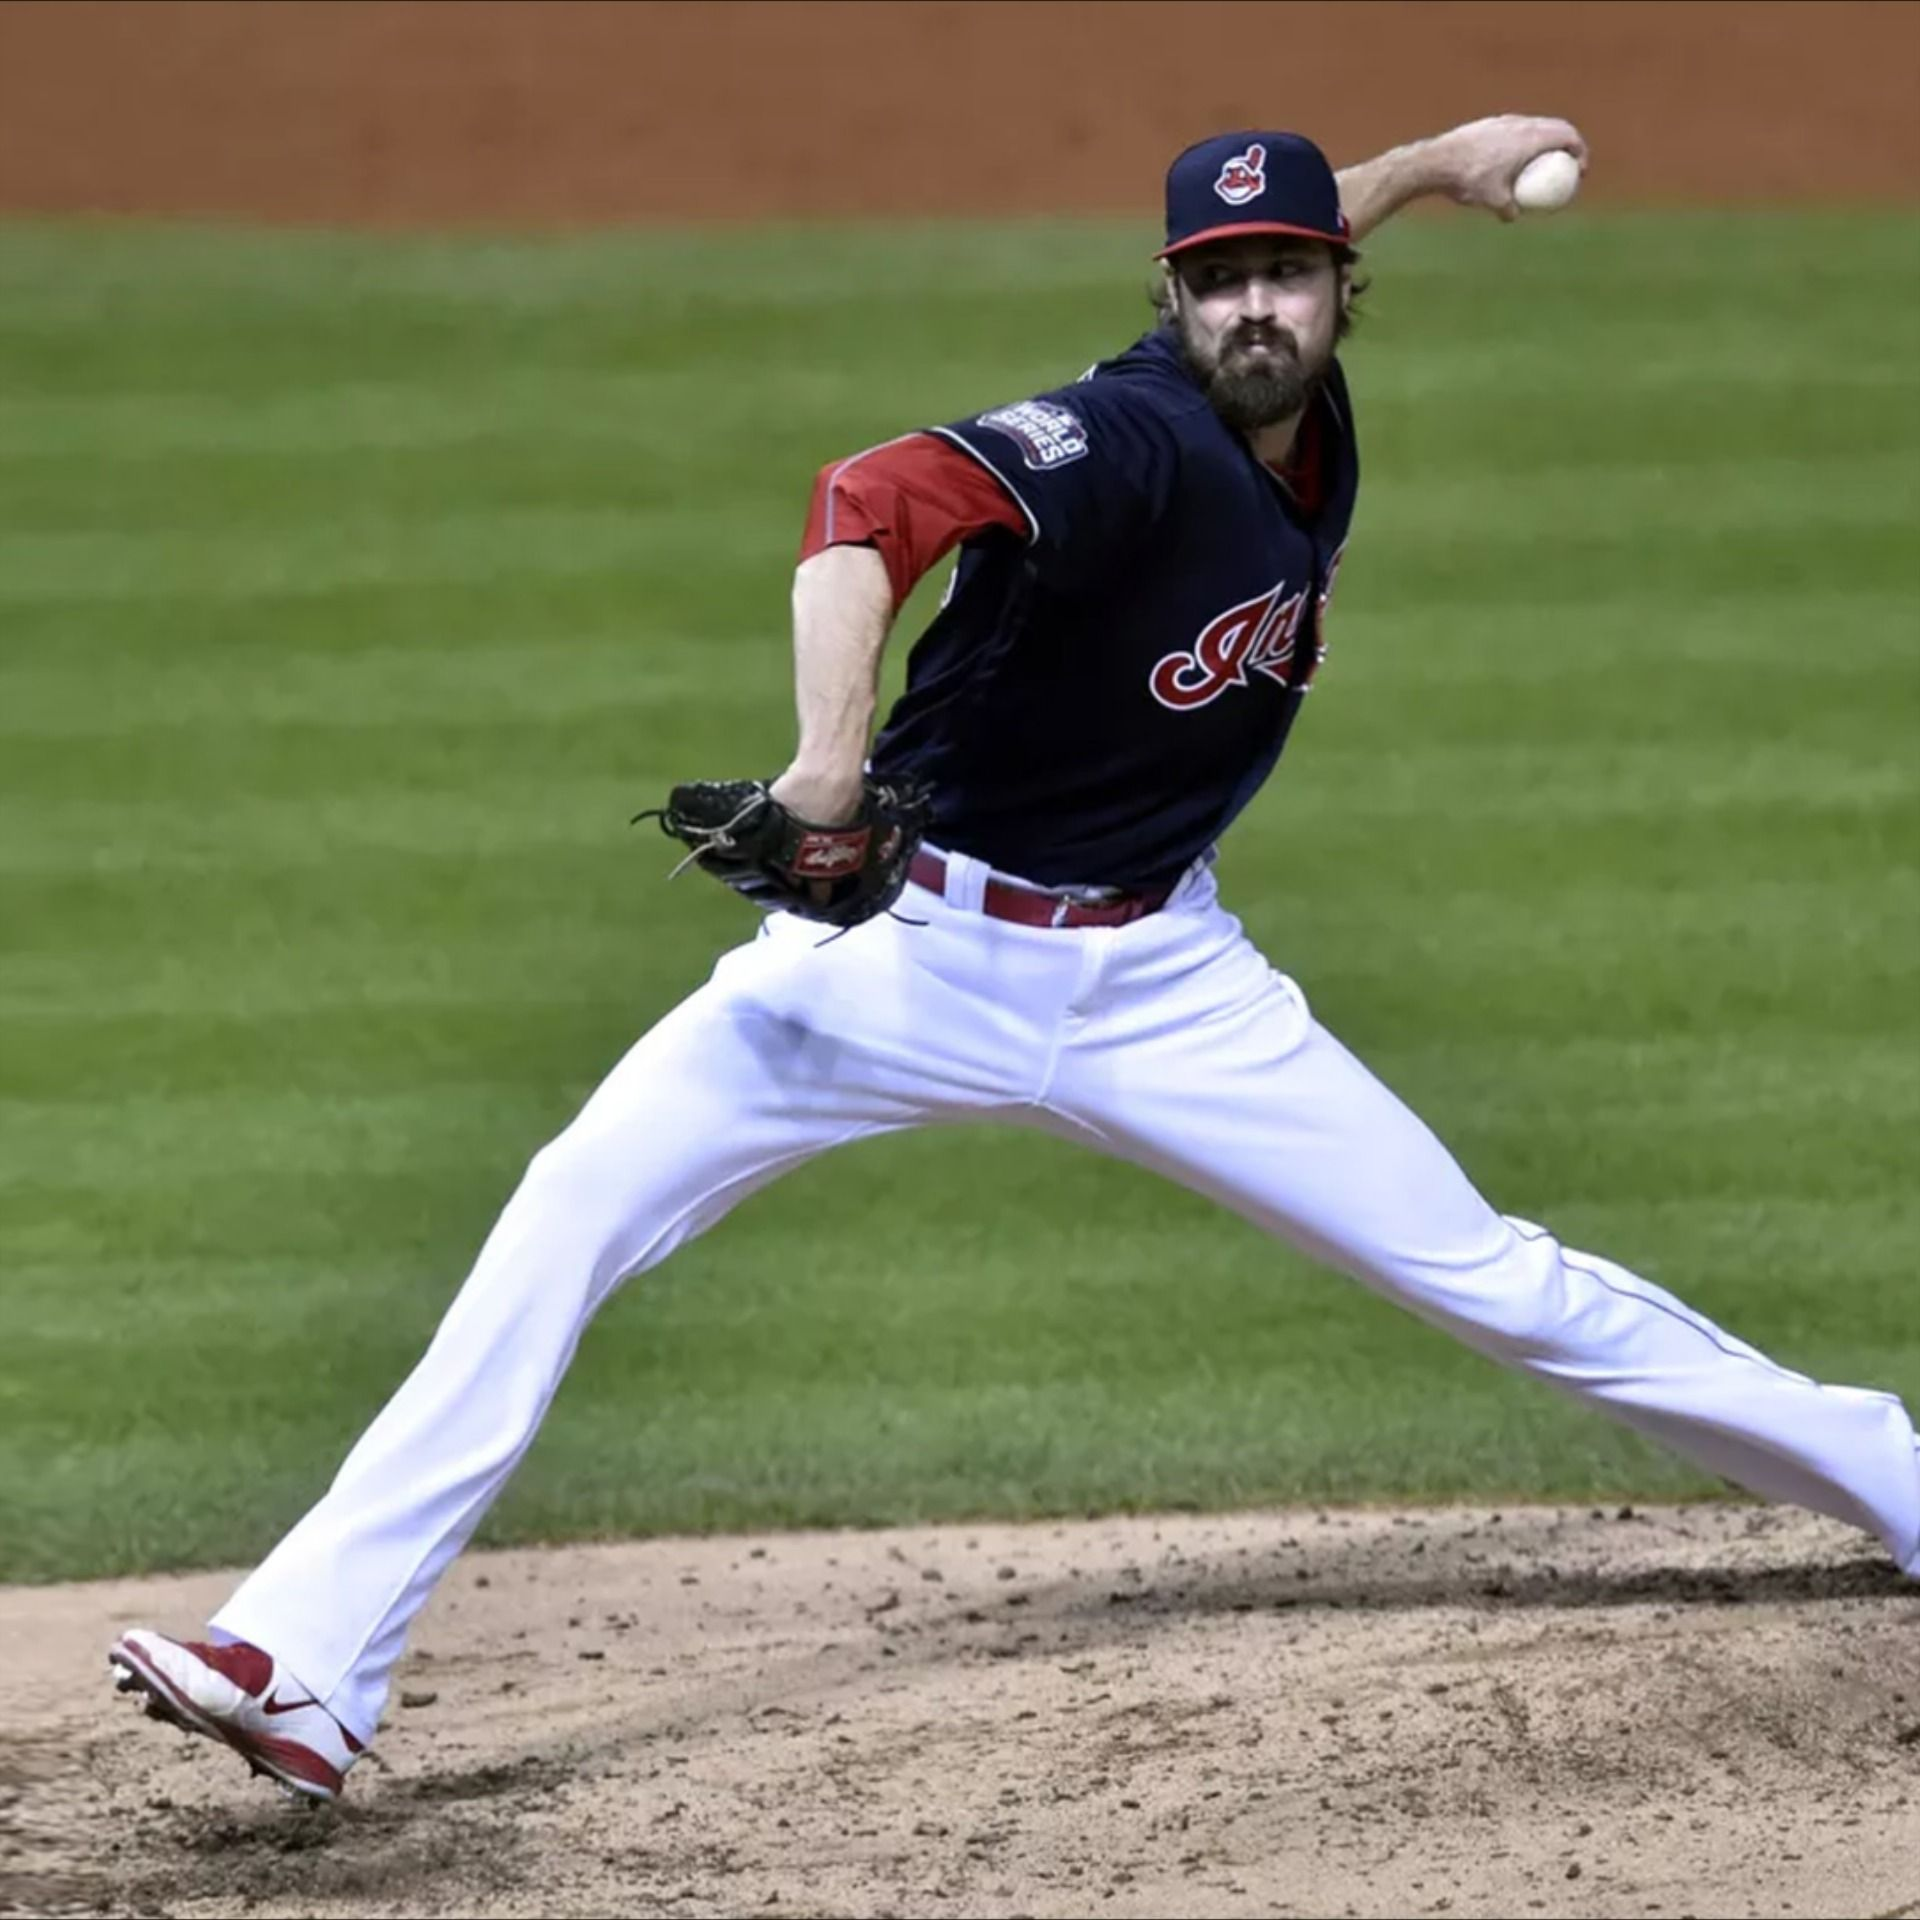 Andrew Miller Pitcher St Louis Cardinals In 2020 Baseball Pitcher Baseball Cardinals